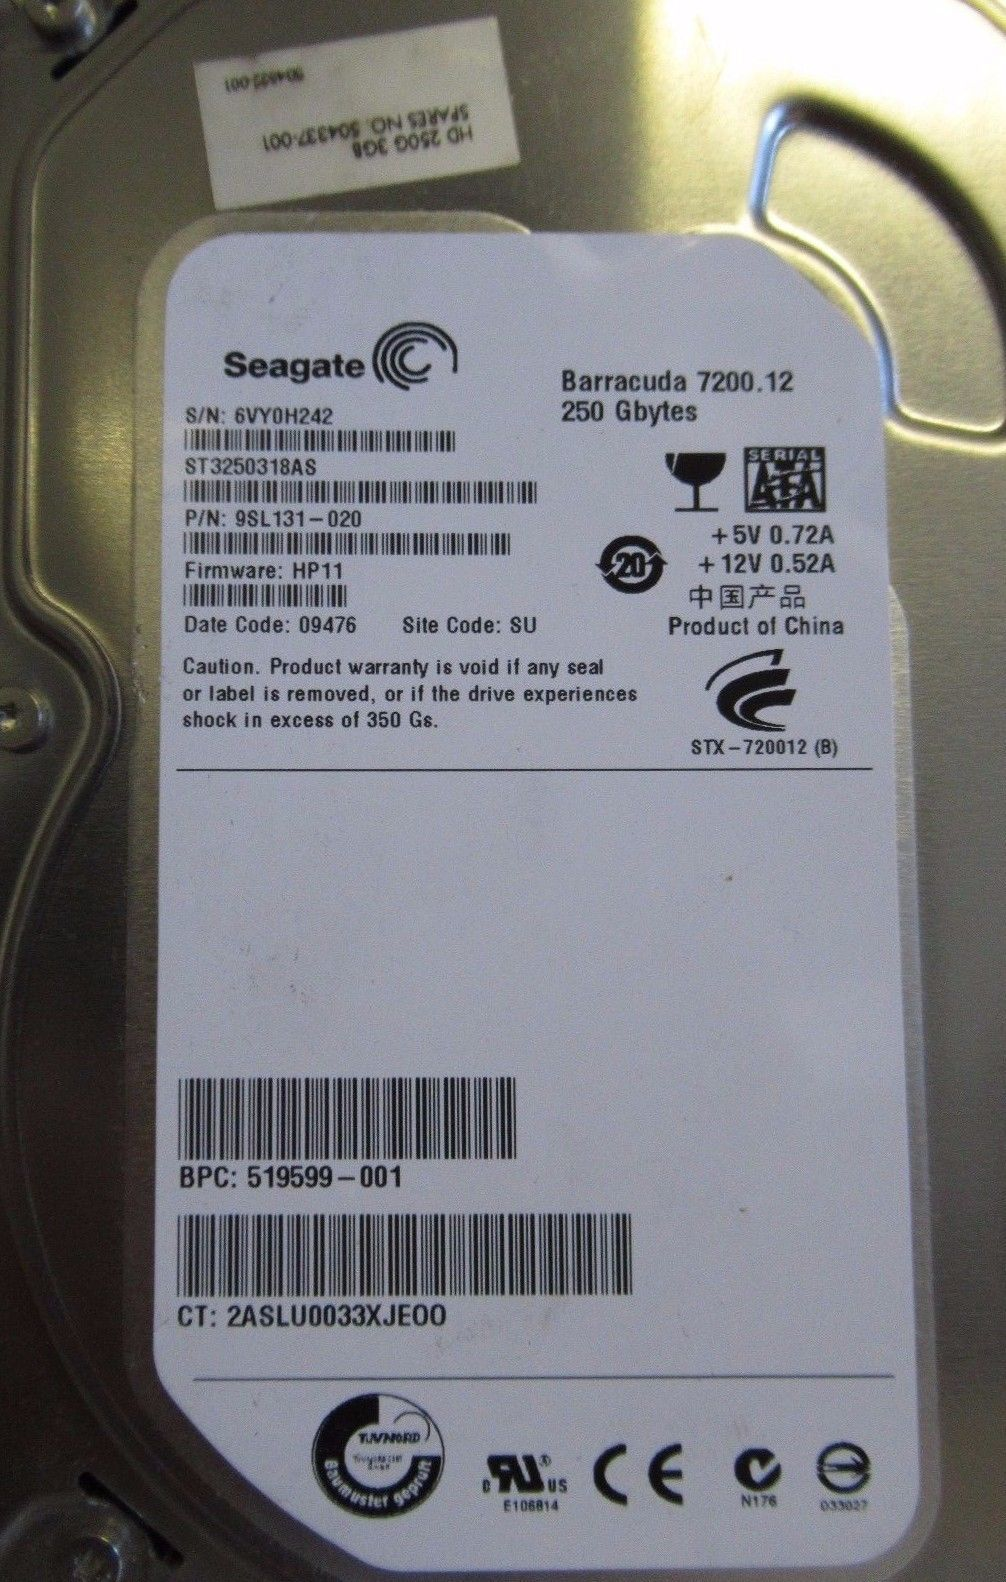 Seagate St350318as 9sl131 020 Barracuda 250gb 7200 Rpm Sata Hard Drive Hardisk Pc 250 Gb